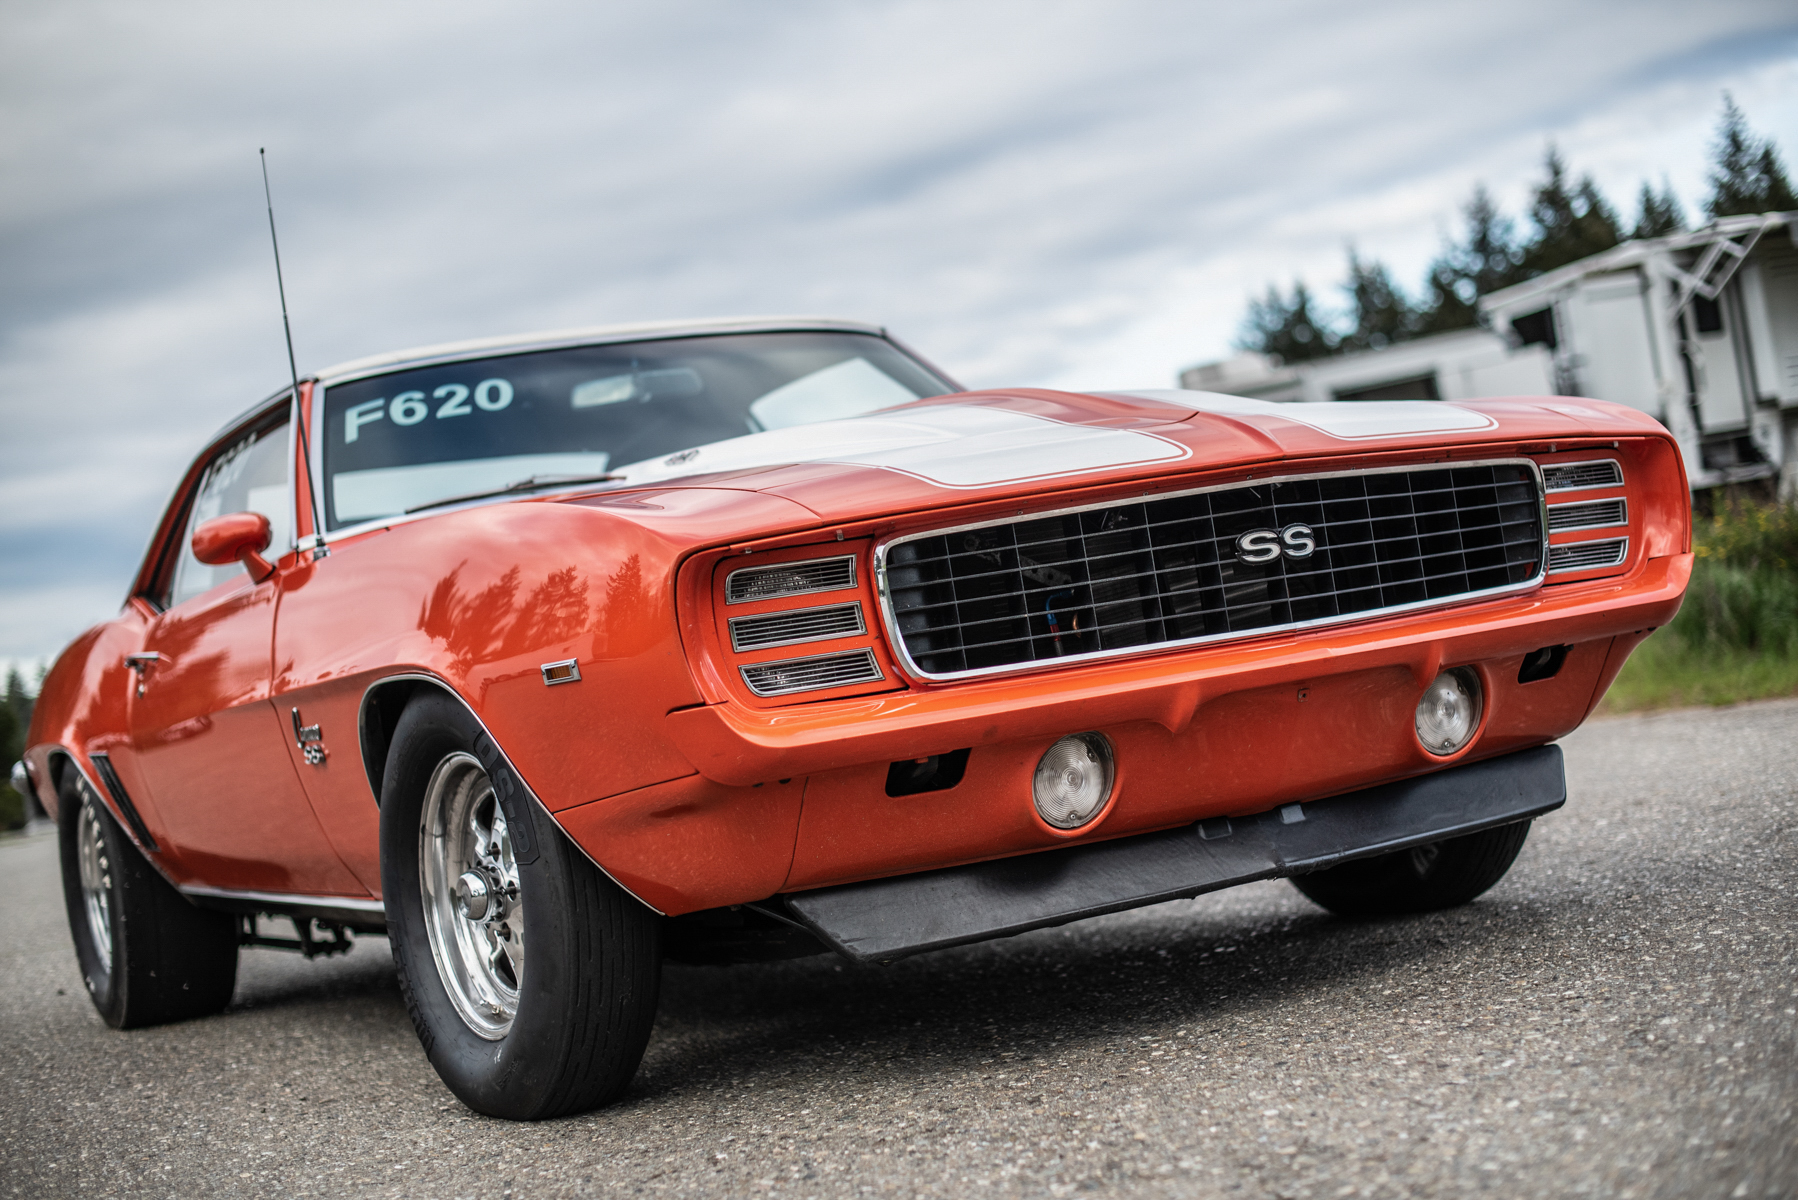 hight resolution of  in 1969 on his 21st birthday decades later he still has the car still runs it at the local track and drives it on the highways and back roads of